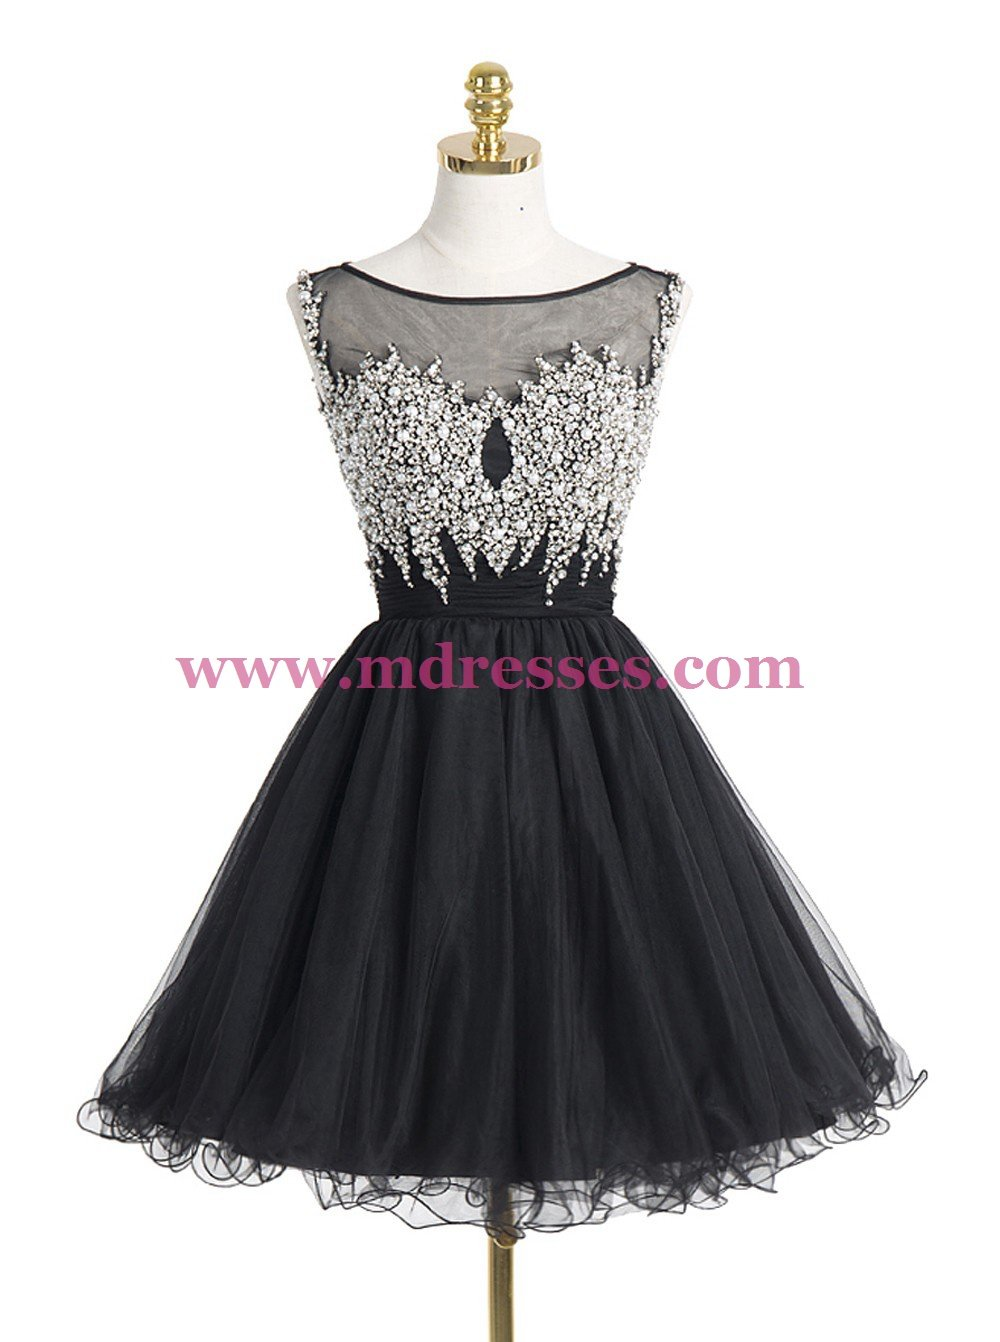 Short/Mini Illusion Neckline Beaded Black Homecoming Cocktail Prom Dresses 523